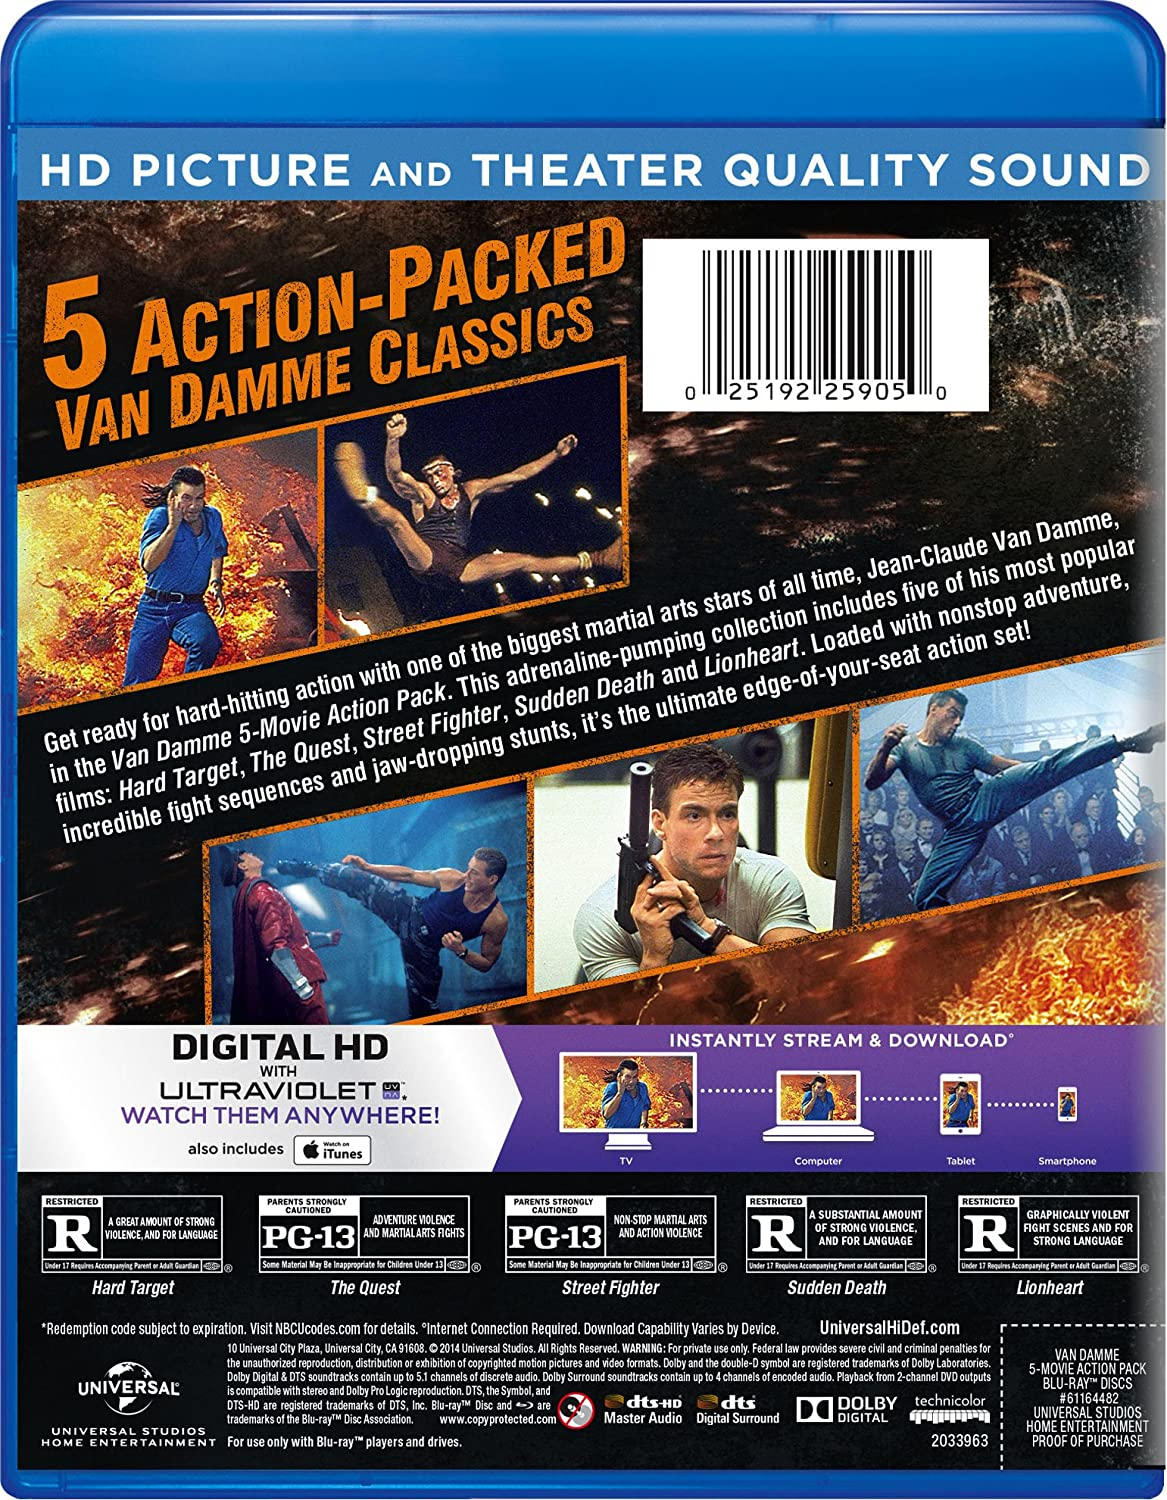 Van Damme 5 Movie Action Pack: Hard Target The Quest